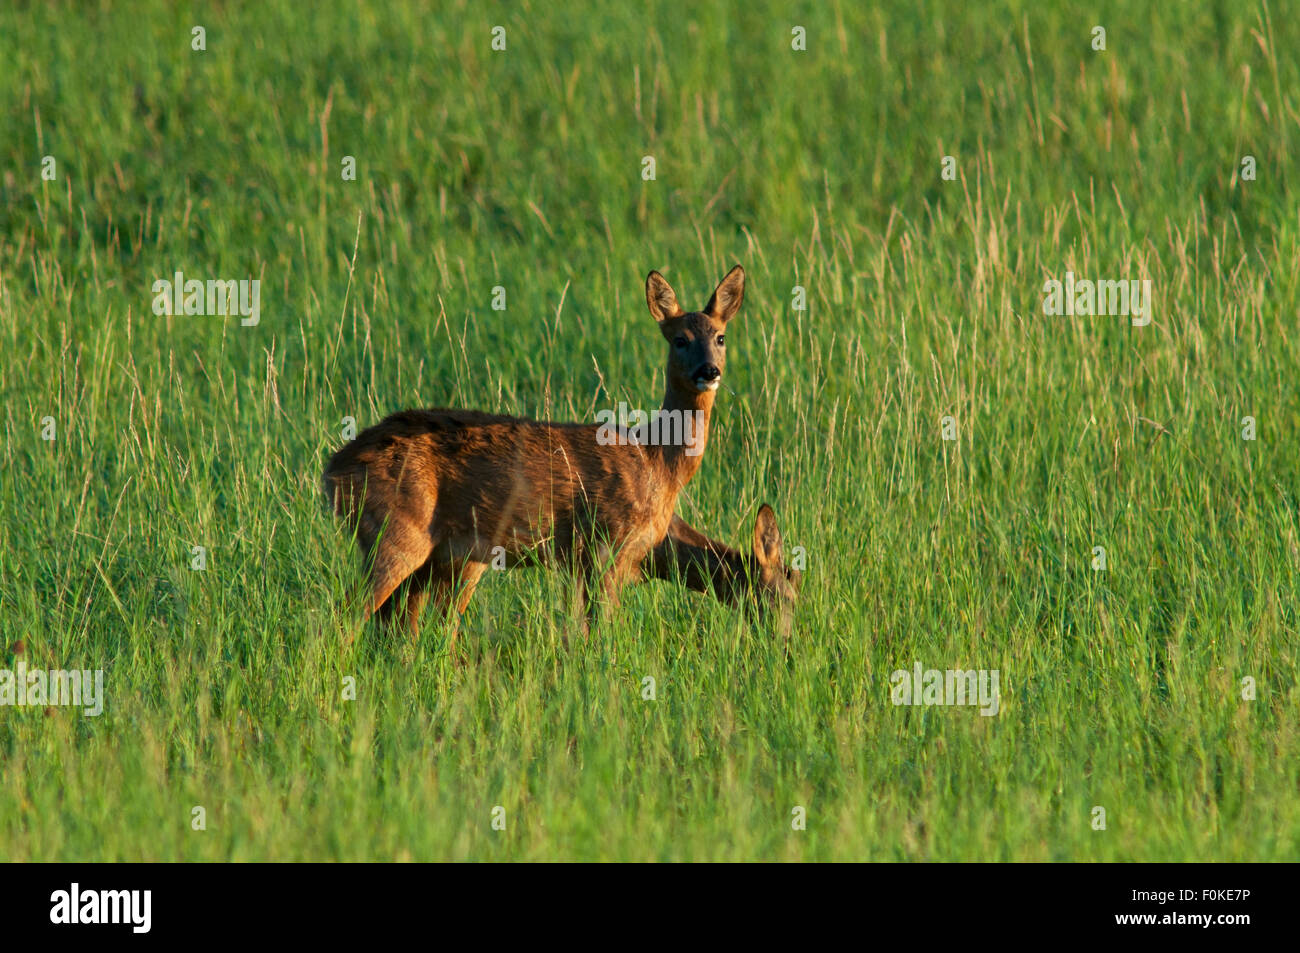 Two deer(Capreolus capreolus) on meadow, one is looking directly into the camera, Eifel, Rhineland-Palatinate, Germany, - Stock Image